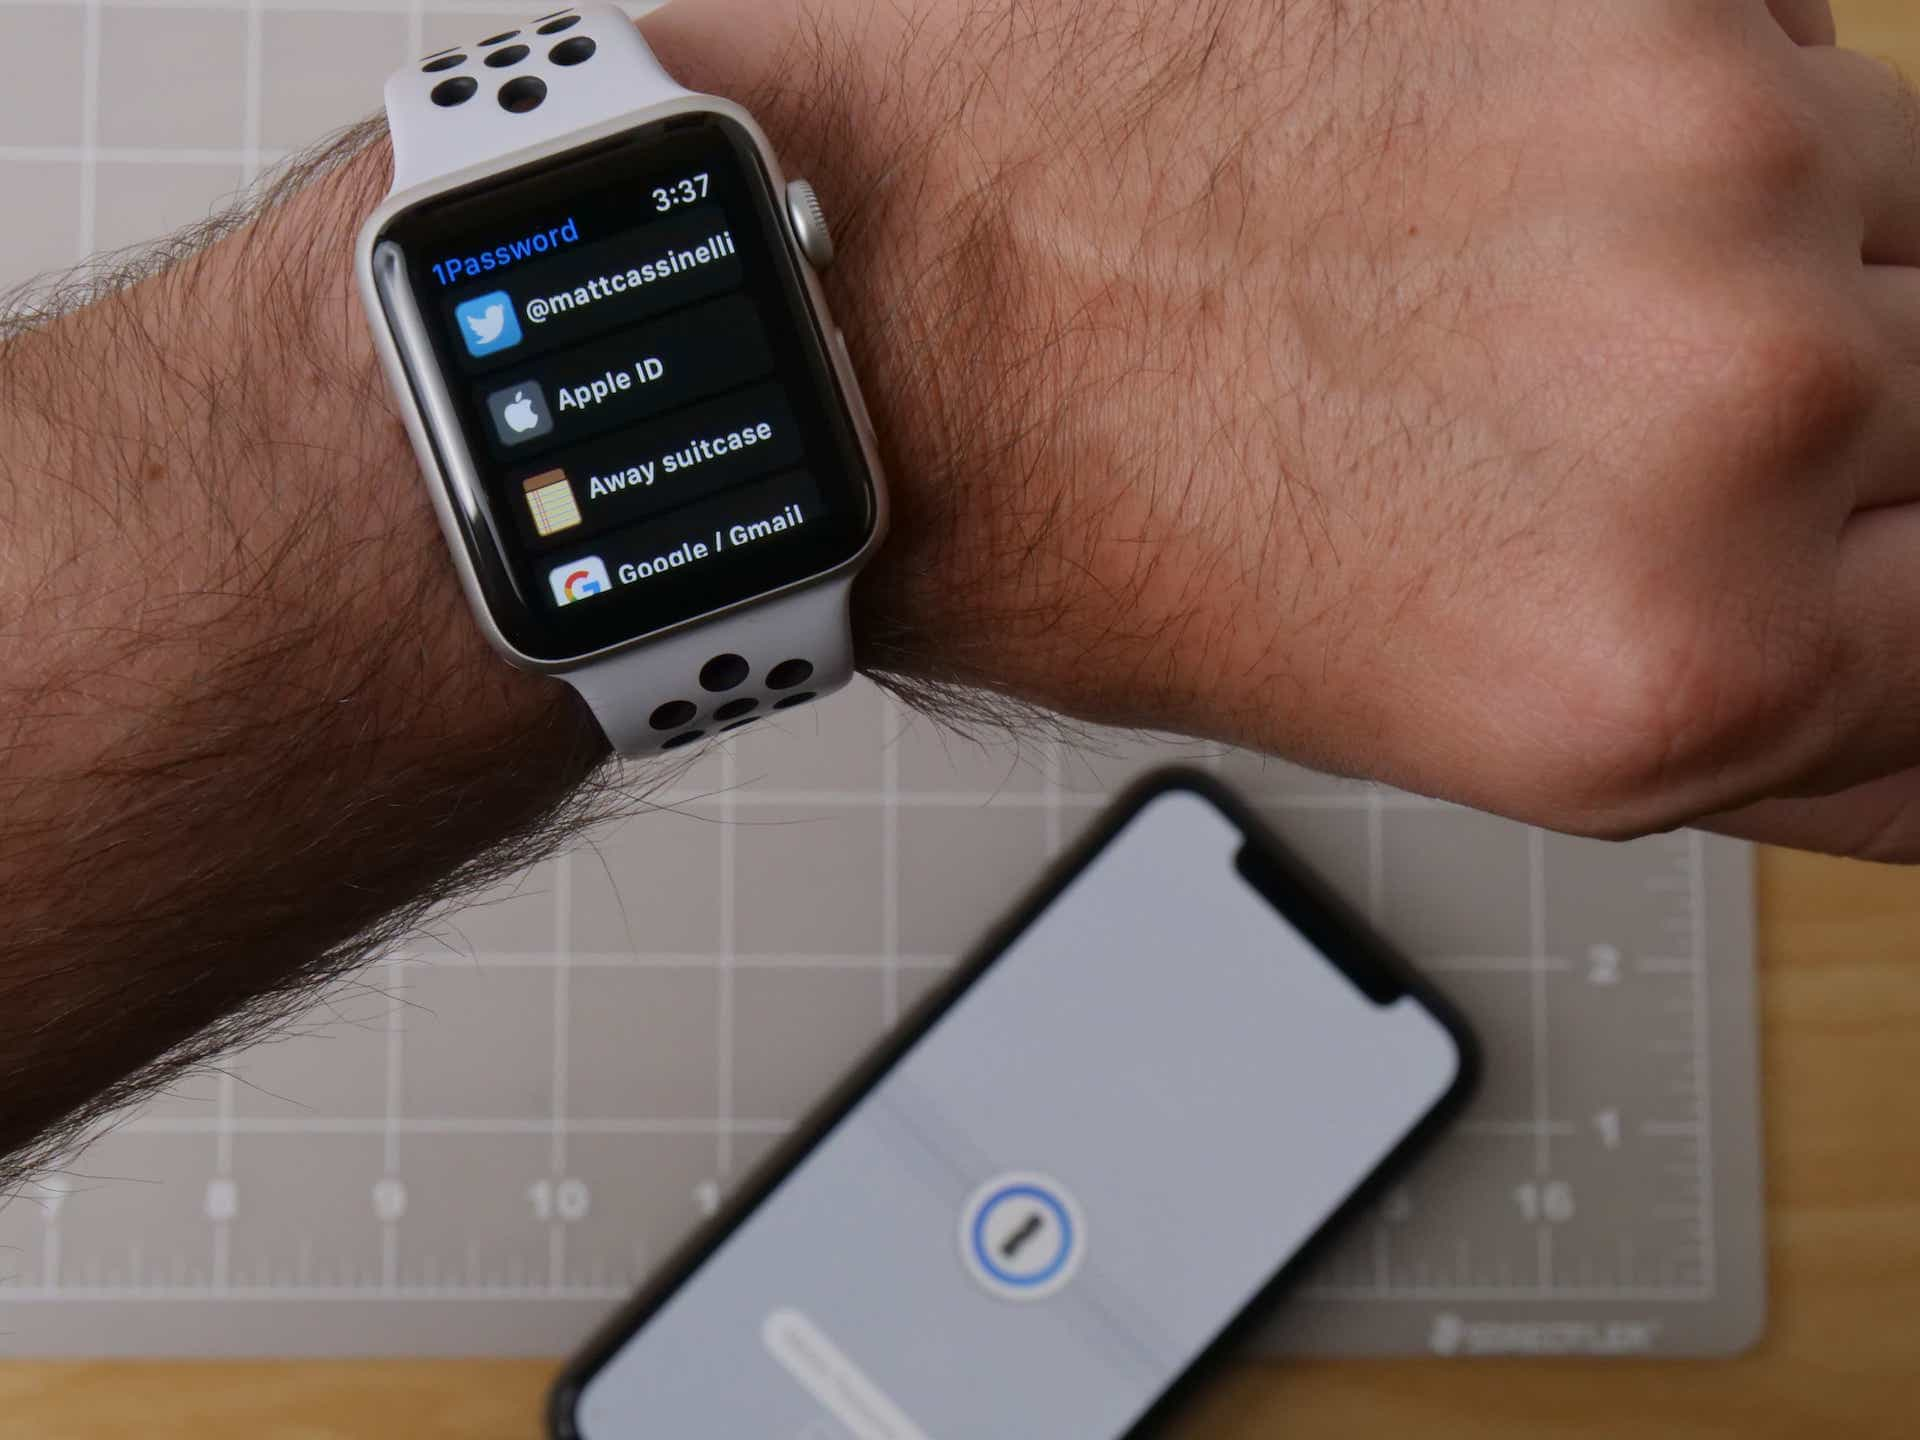 1Password Apple Watch